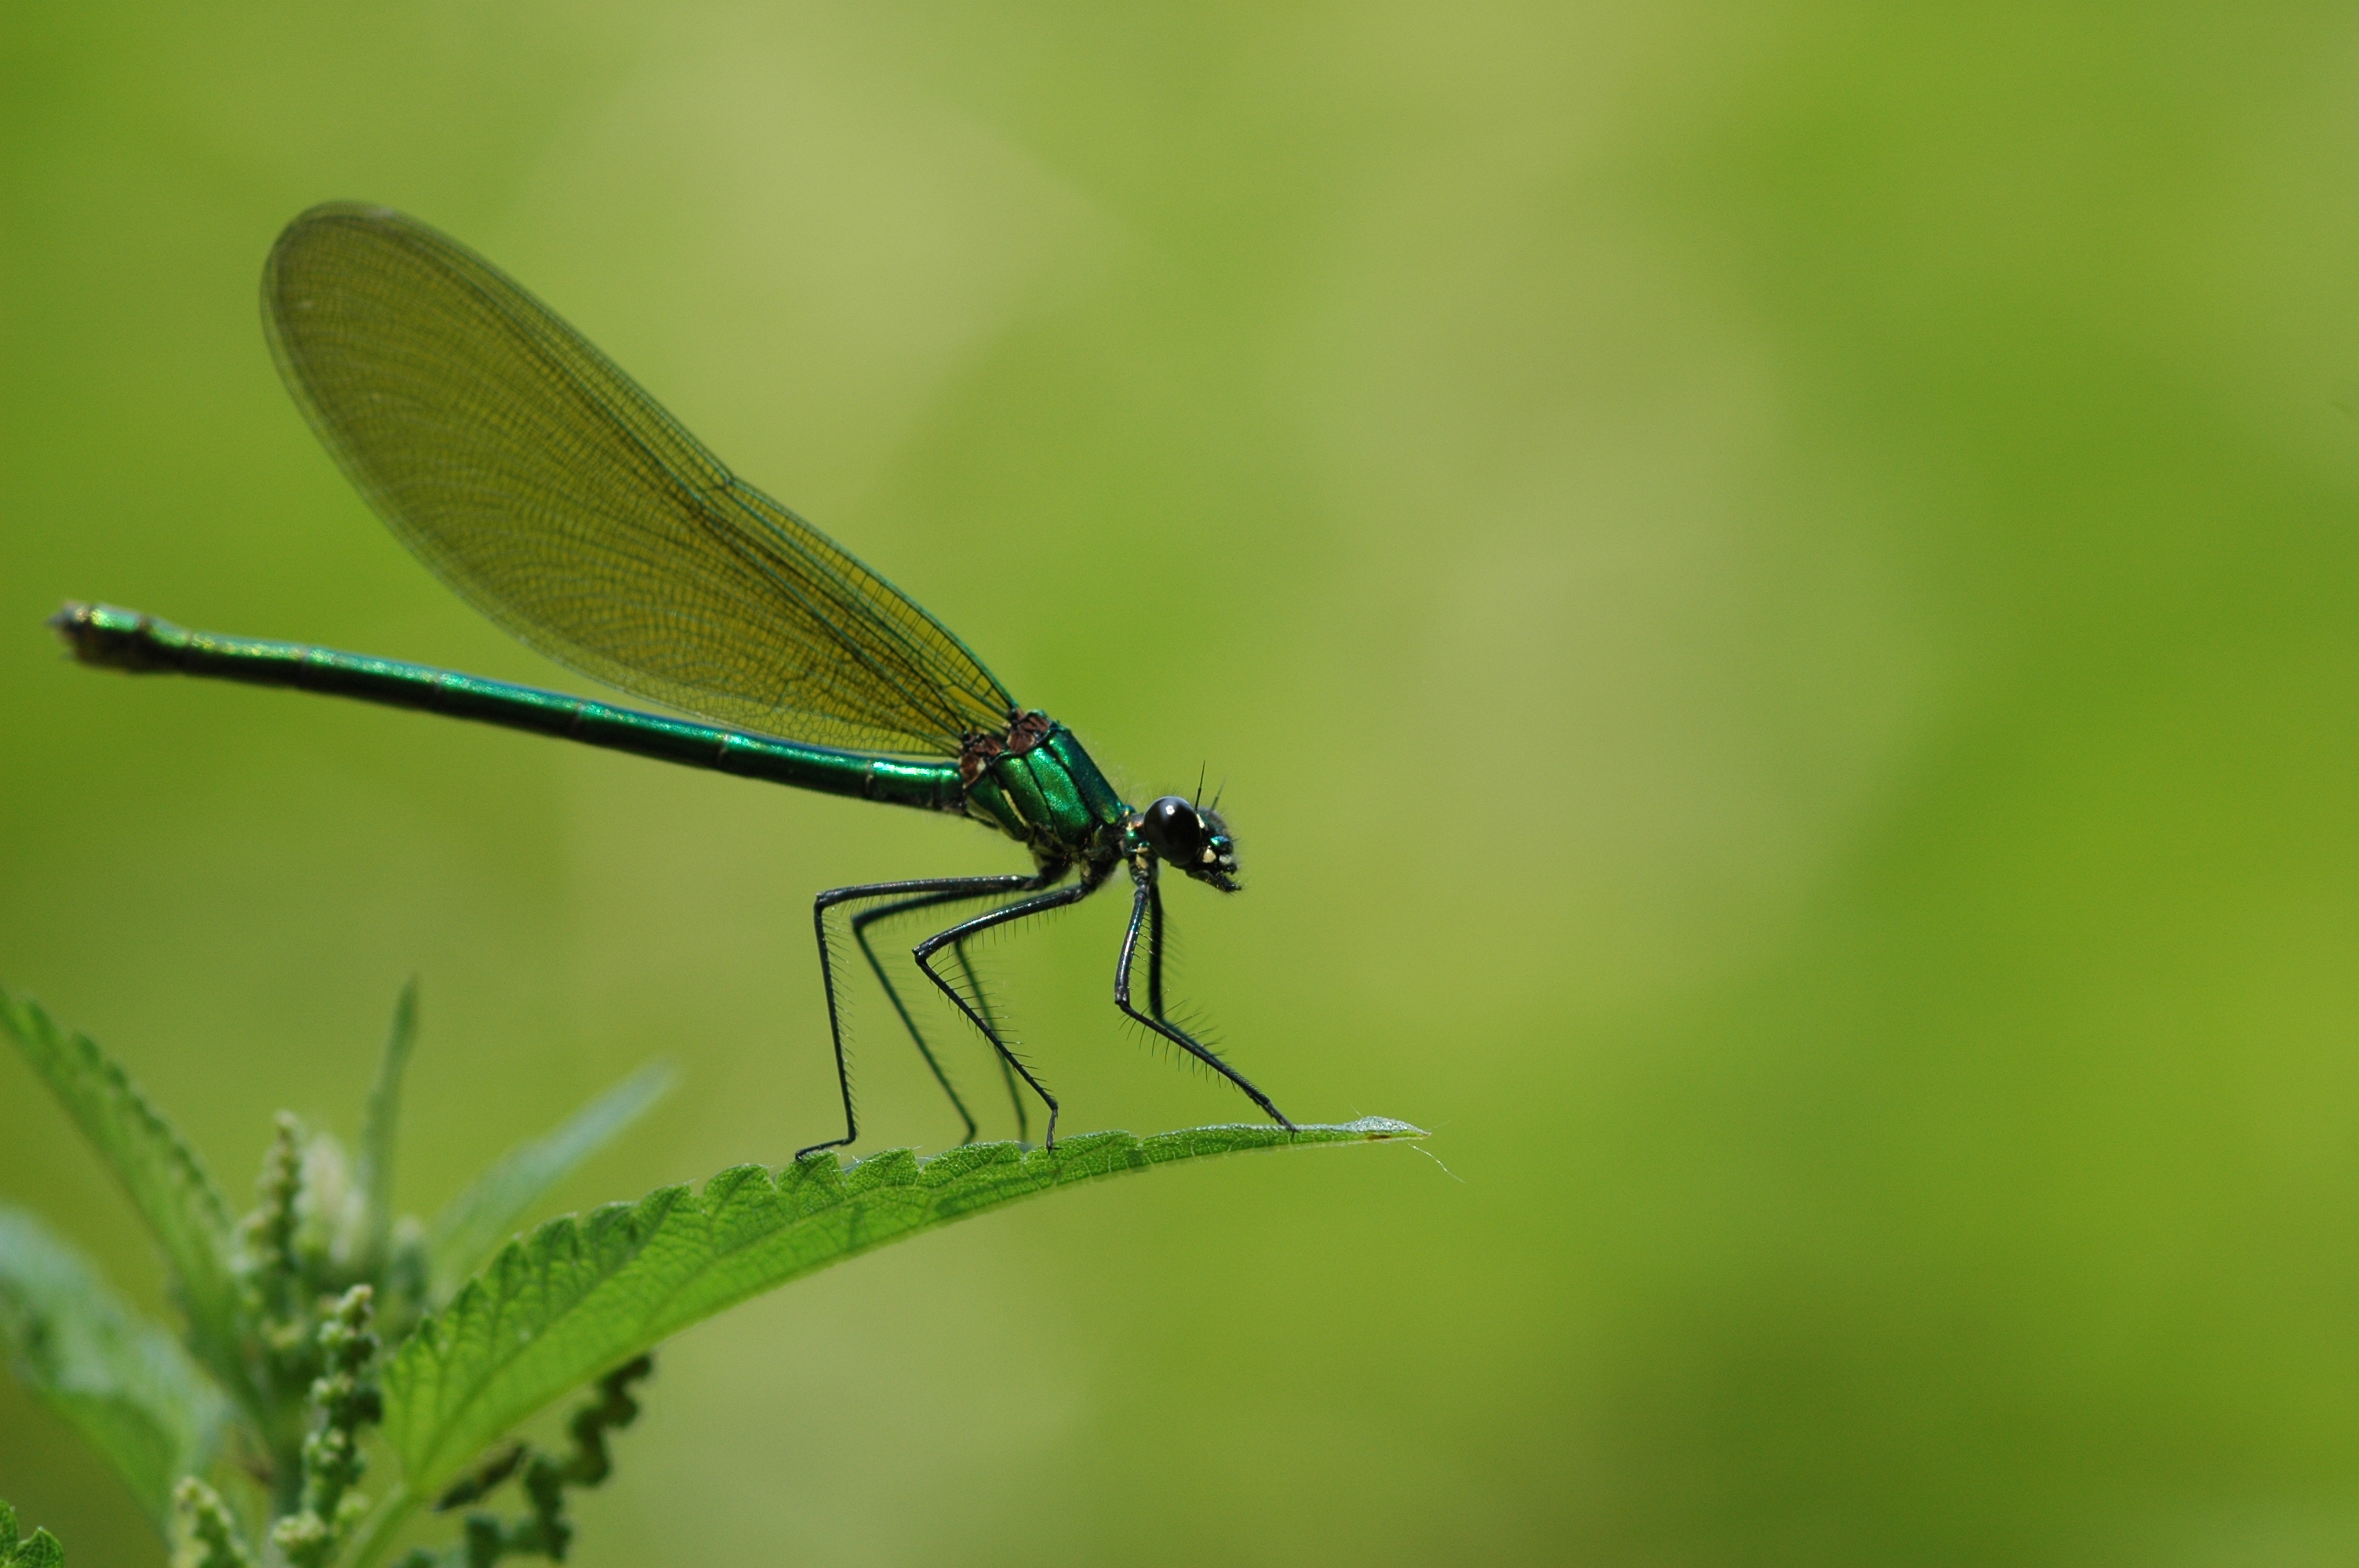 File:2010-06-29 (13) Dragonfly.JPG - Wikimedia Commons